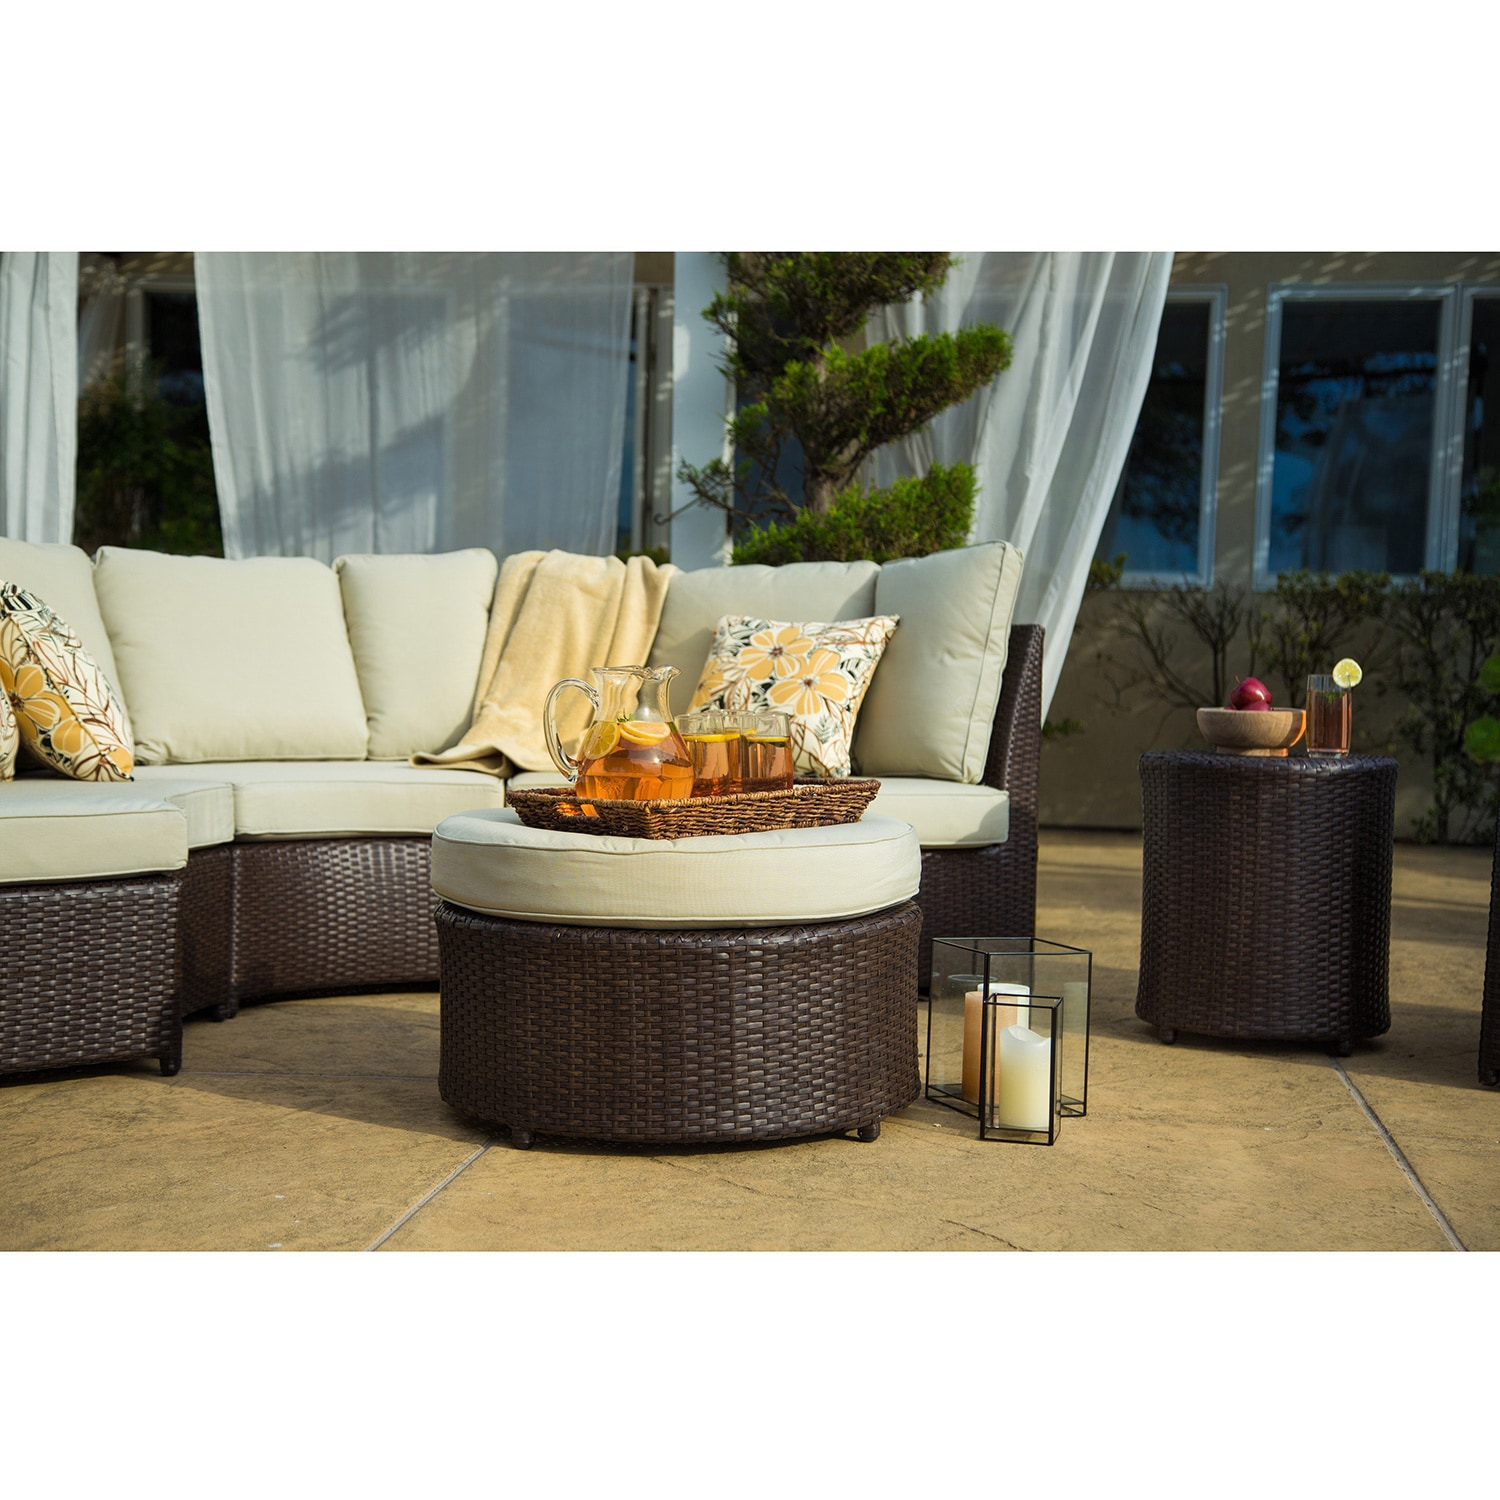 Corvus Melrose 8 Piece Brown Wicker Patio Furniture Set Free Shipping Today 15130522